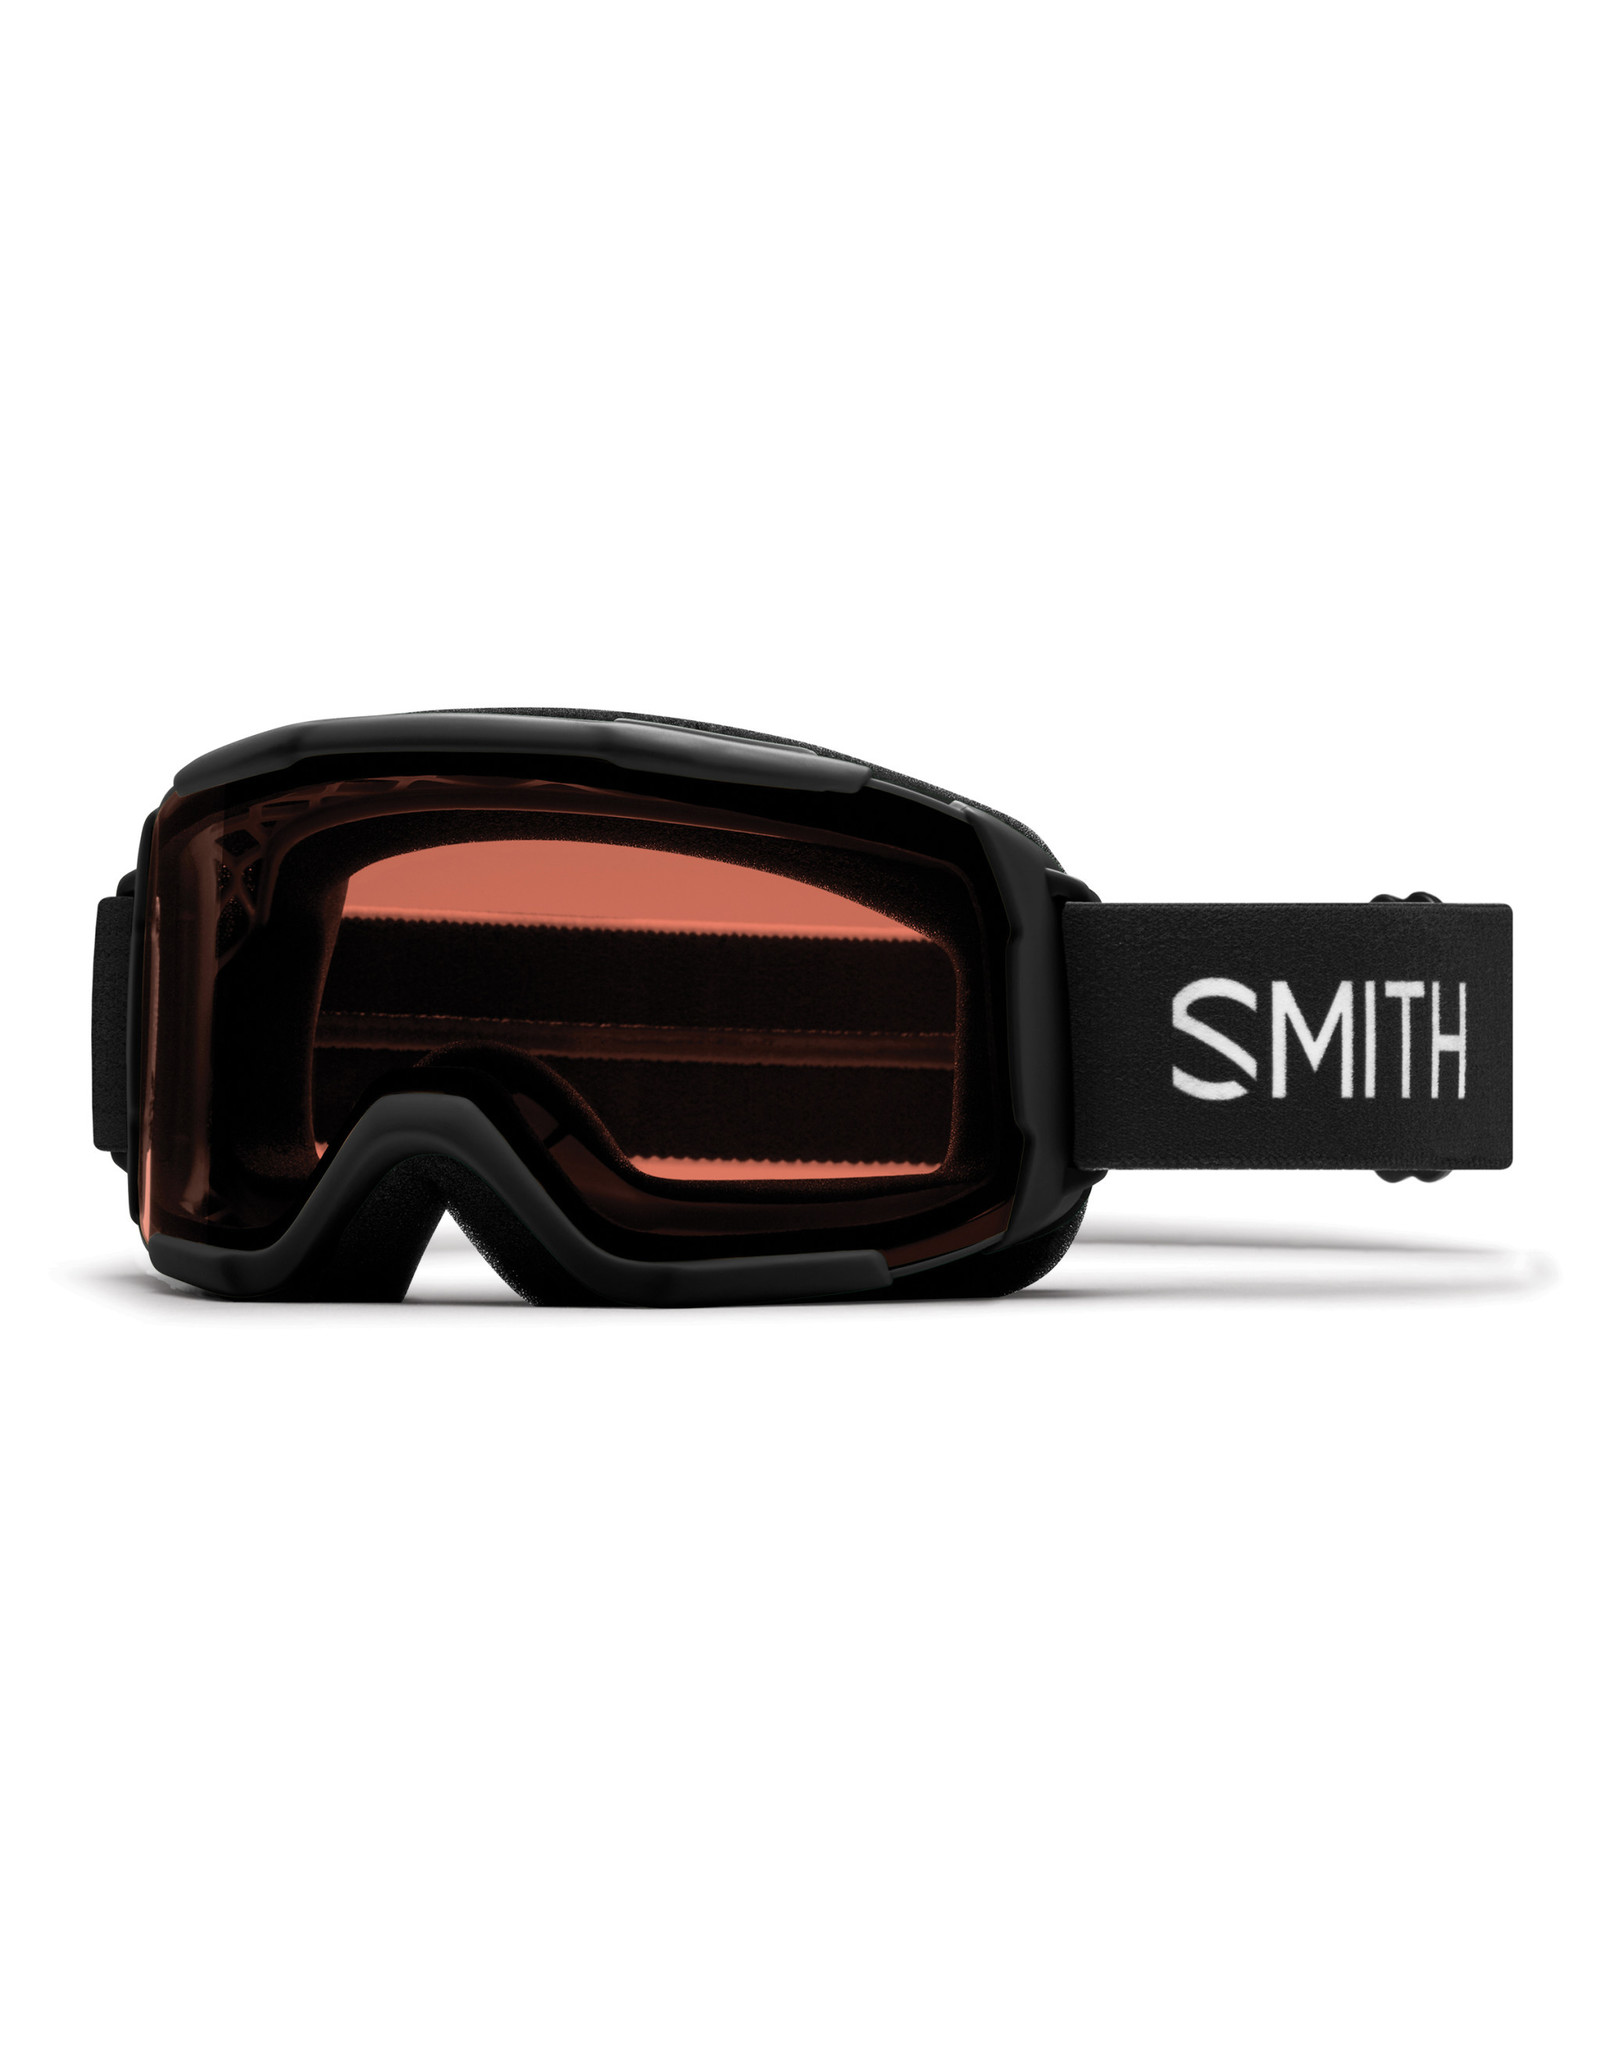 Smith SMITH DAREDEVIL BLACK 20 SKI GOGGLE YOUTH